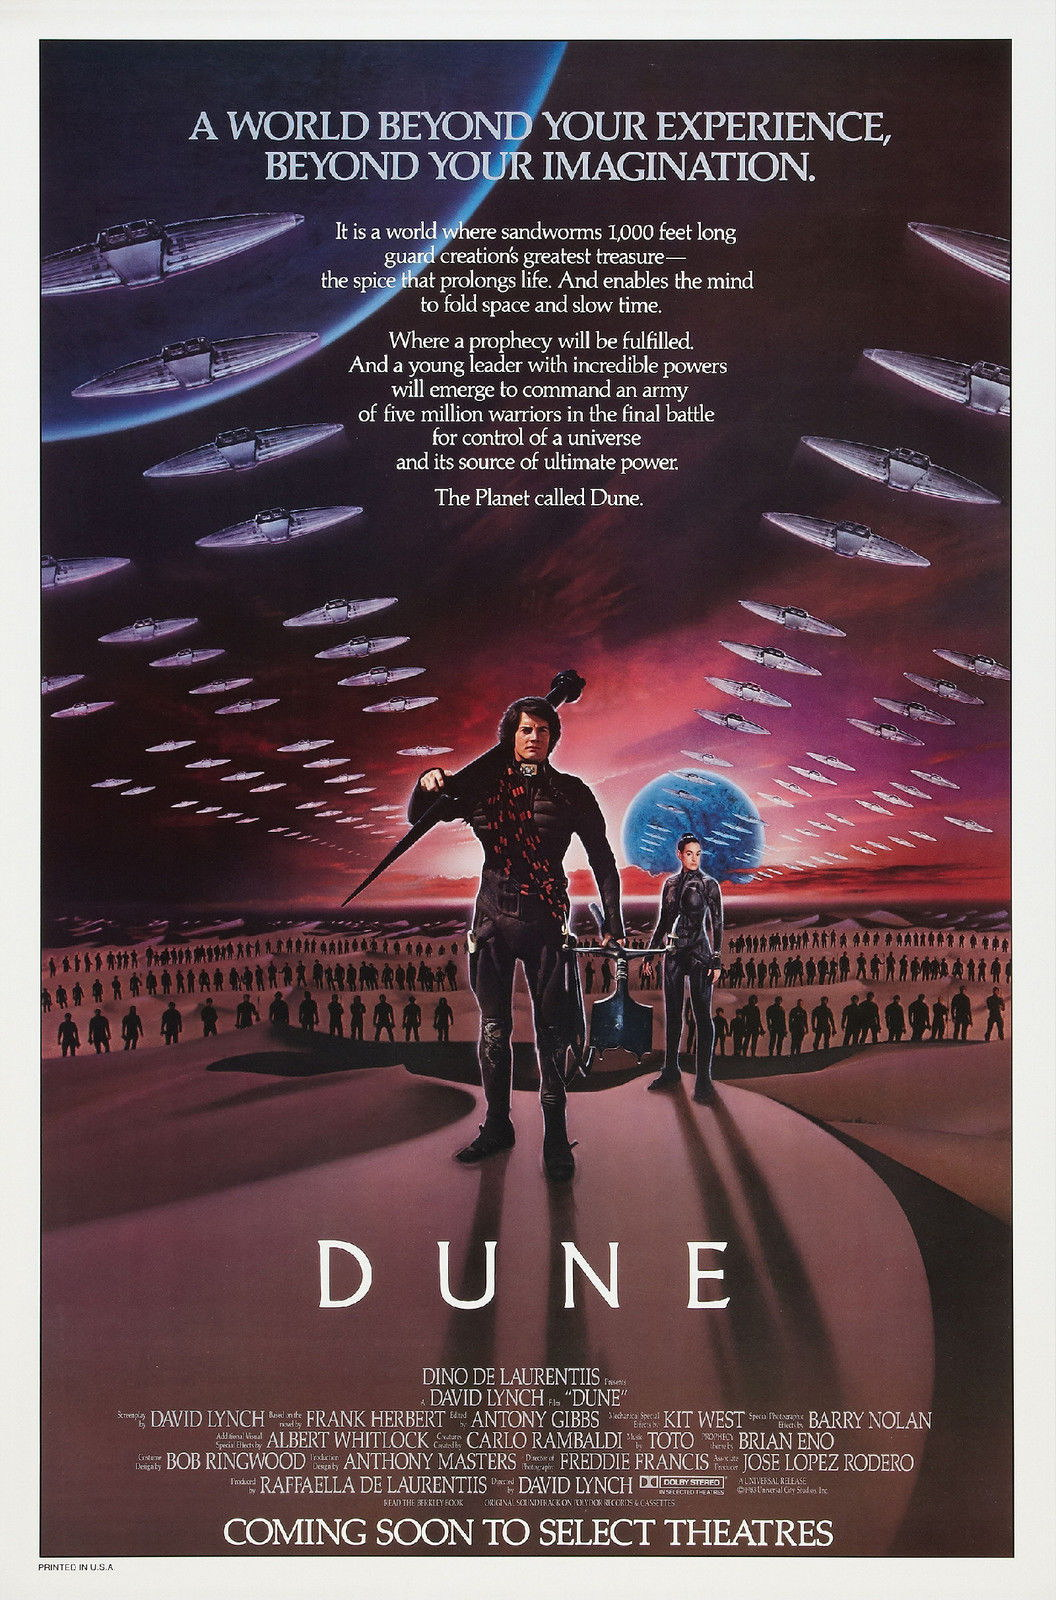 72551-DUNE-Movie-1984-Sci-Fi-Wall-Print-Poster-Affiche